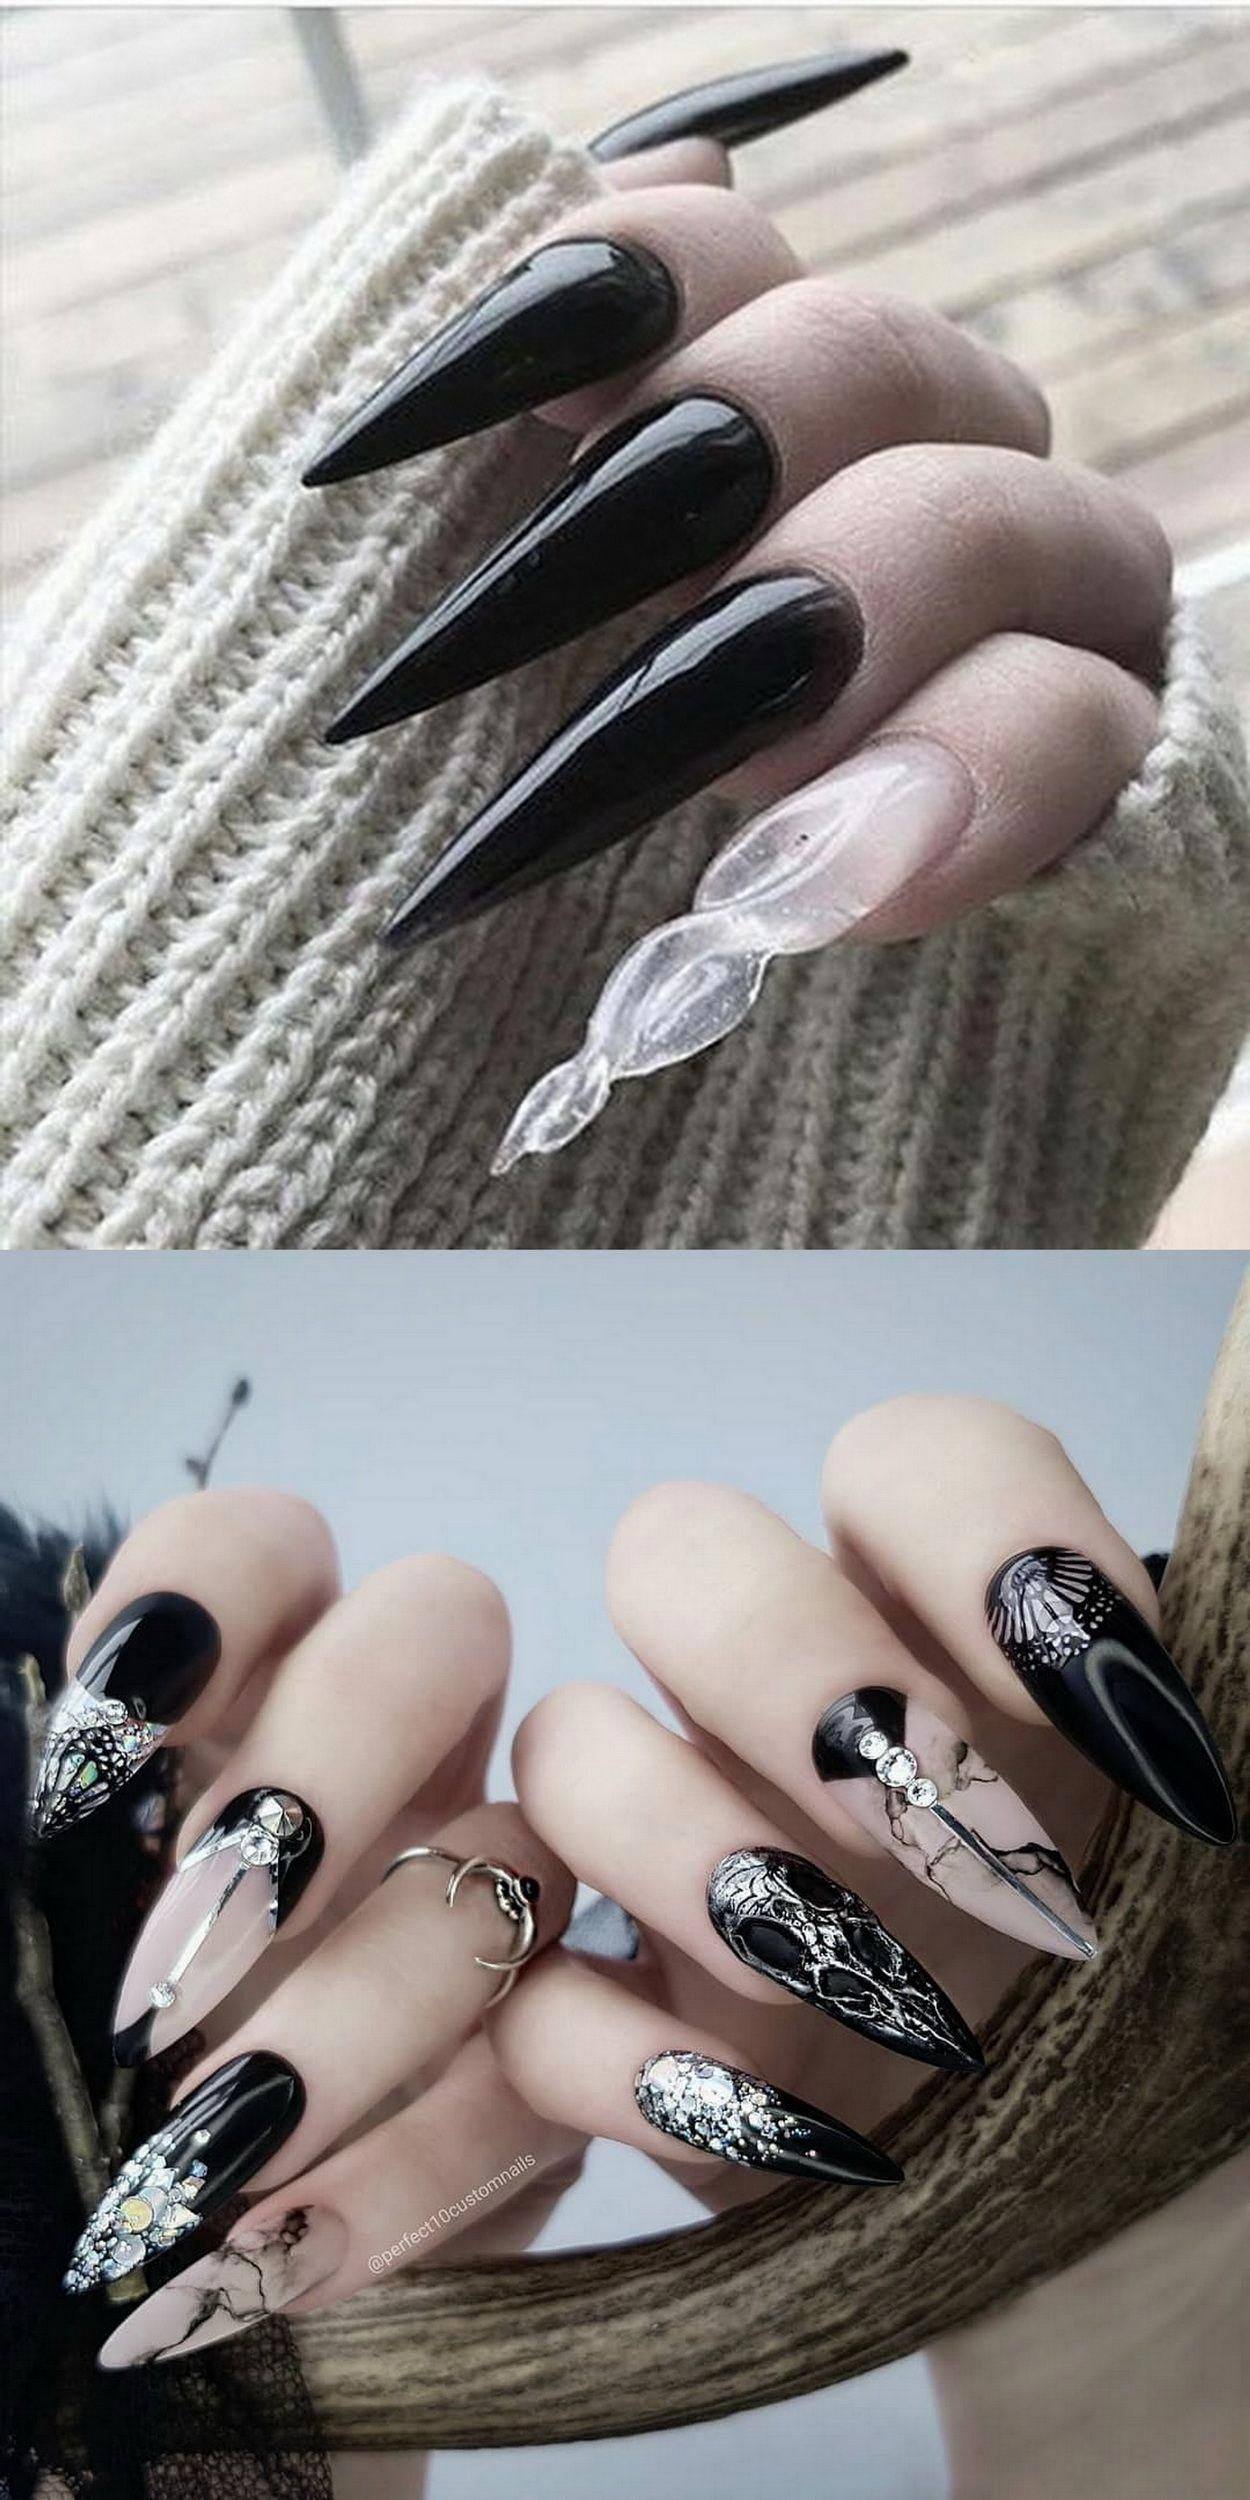 Pin By Daniela Diaz On Nail Inspiration In 2020 Long Black Nails Black Stiletto Nails Goth Nails